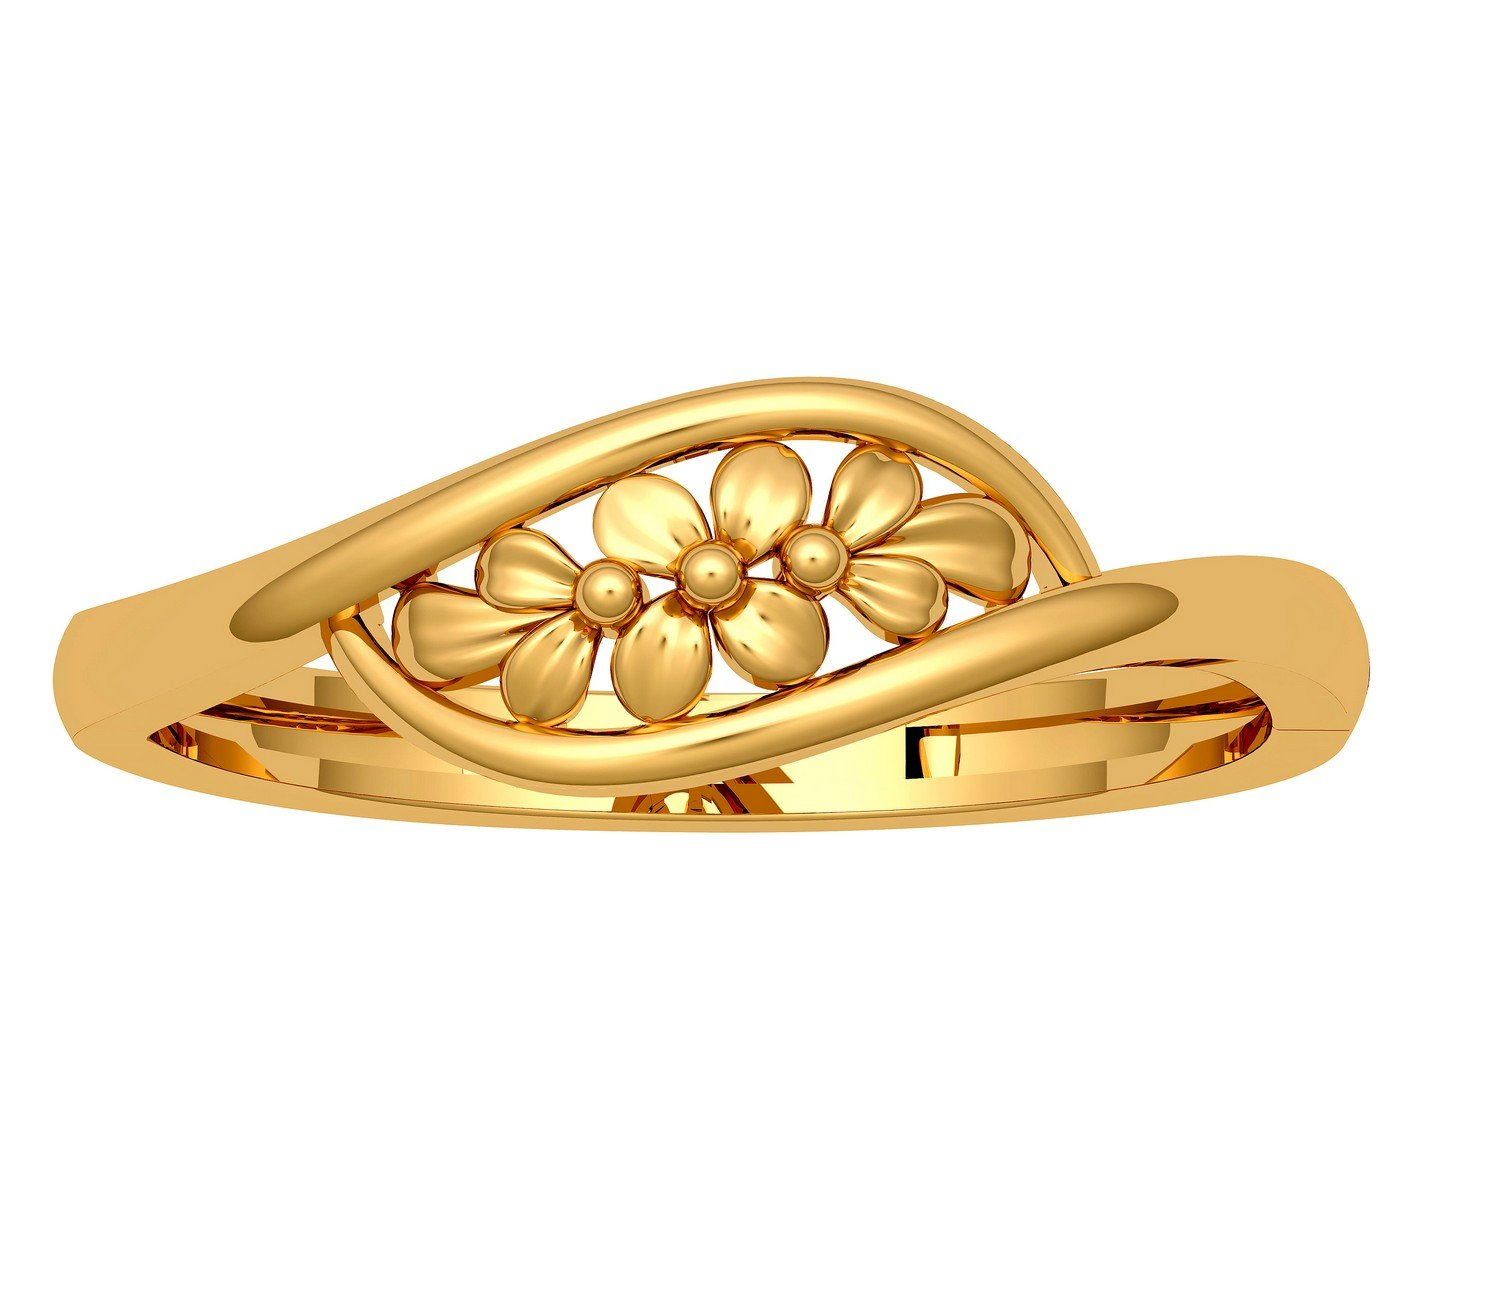 JewelOne 22k (916) Yellow Gold The Orosja Ring